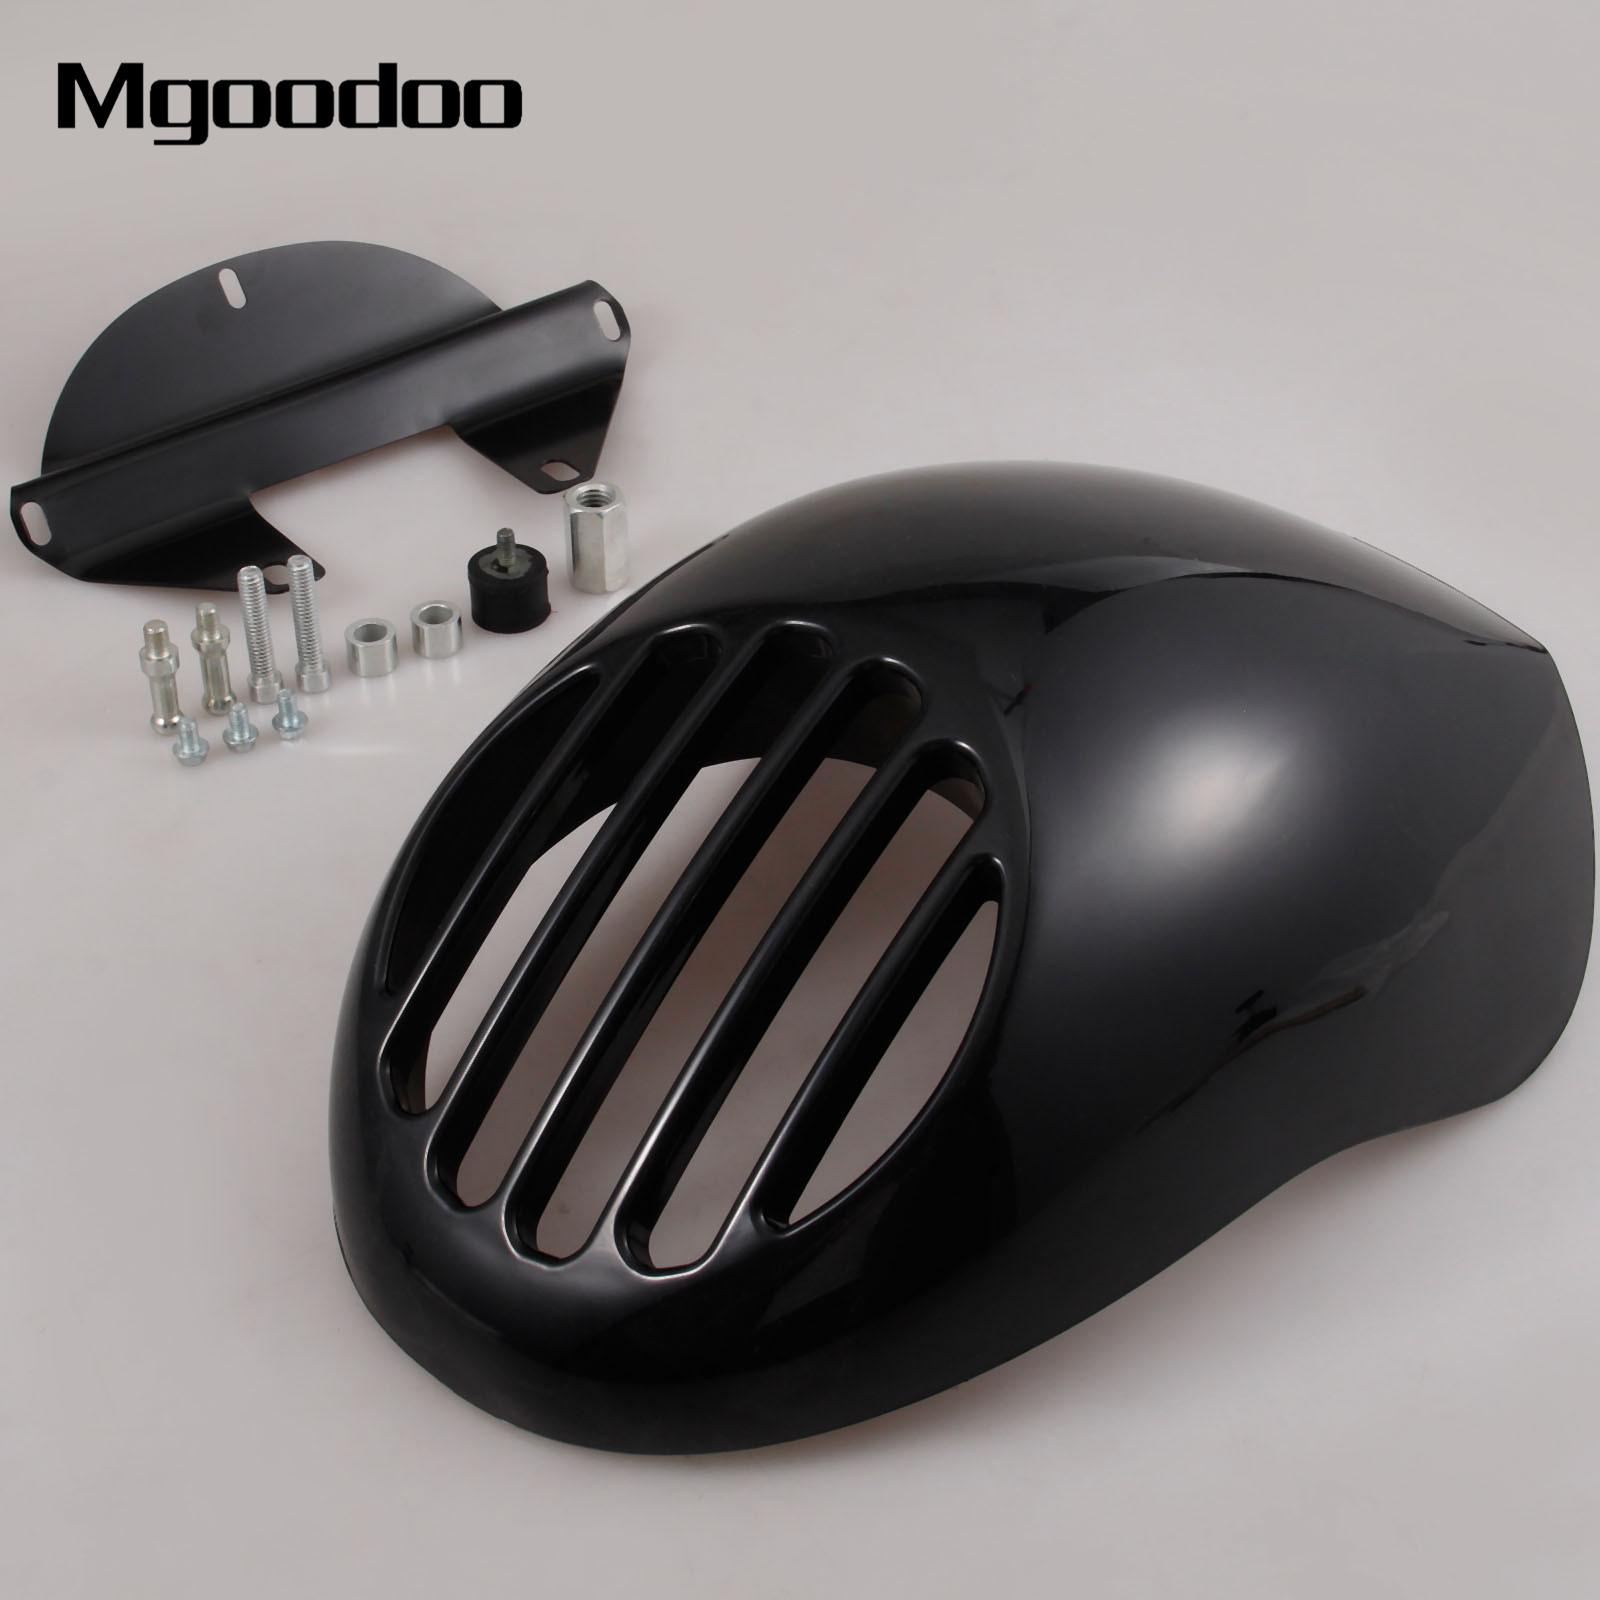 Mgoodoo Grill Headlight Fairing Mask Motorcycle Front Cowl Fork Mount For Harley Sportster Dyna XL 883 FXRS Motorbike Parts